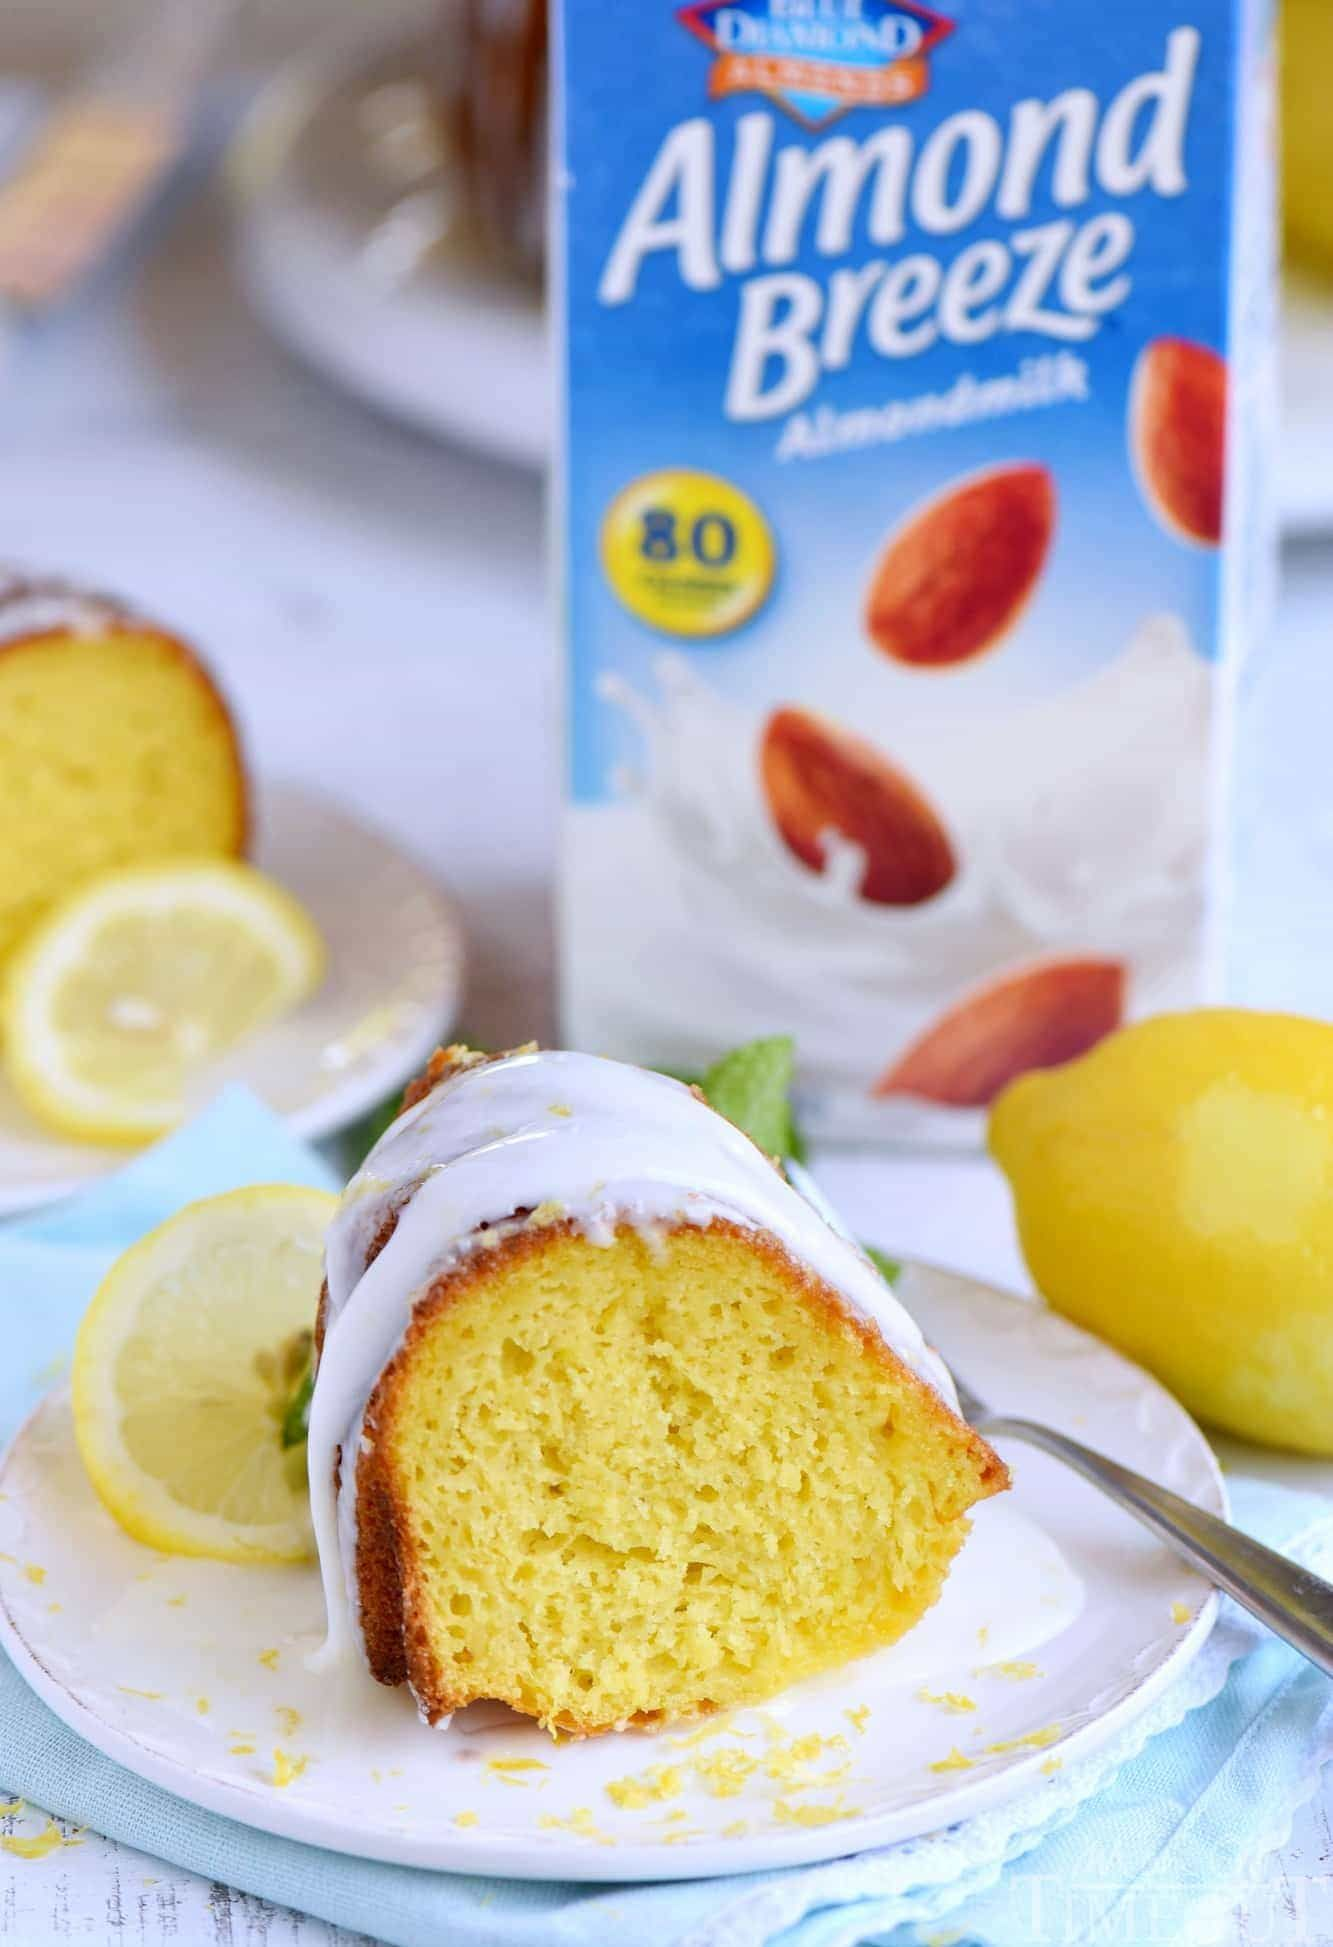 Looking for an easy lemon dessert recipe that is going to